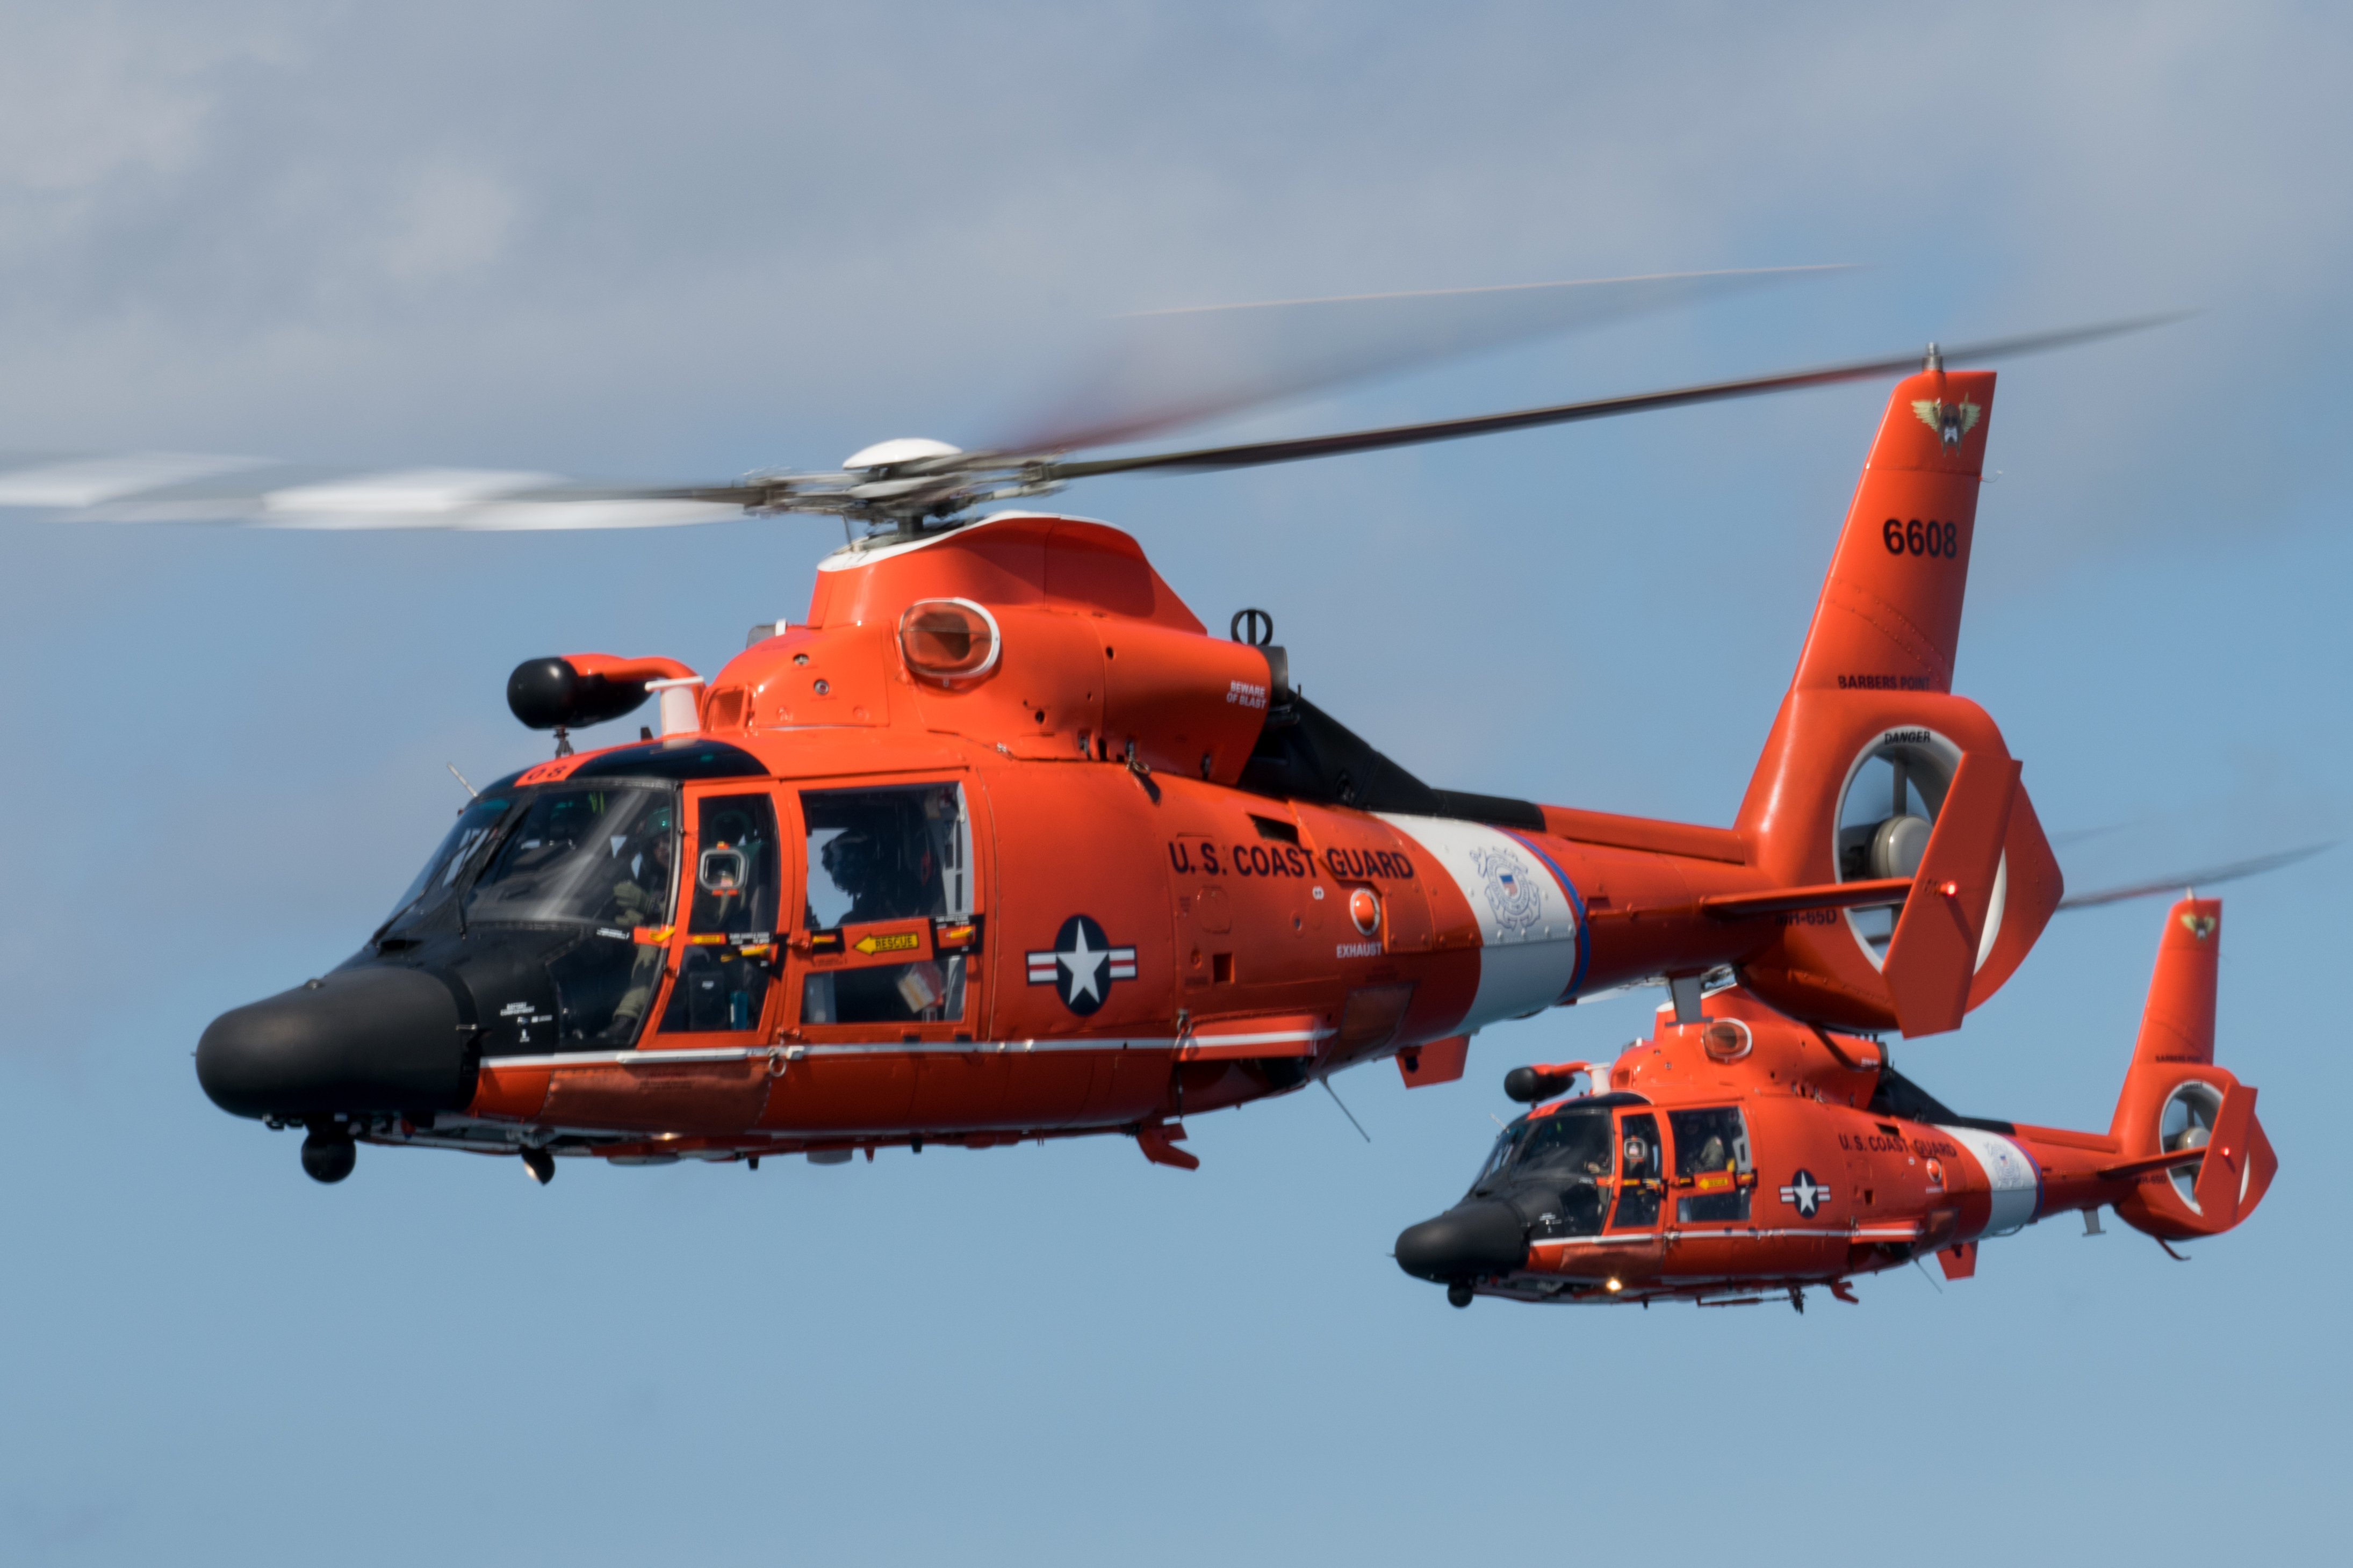 dolphin helicopter with File Uscg Mh 65 Dolphin Formation Flight Over Oahu  1 on File Troops Carry Casualty to Blackhawk Helicopter MOD 45150649 also Avdaufin together with 2013 CHC Helicopters Eurocopter AS332 crash in addition Floridaisland also 555 Fennec.